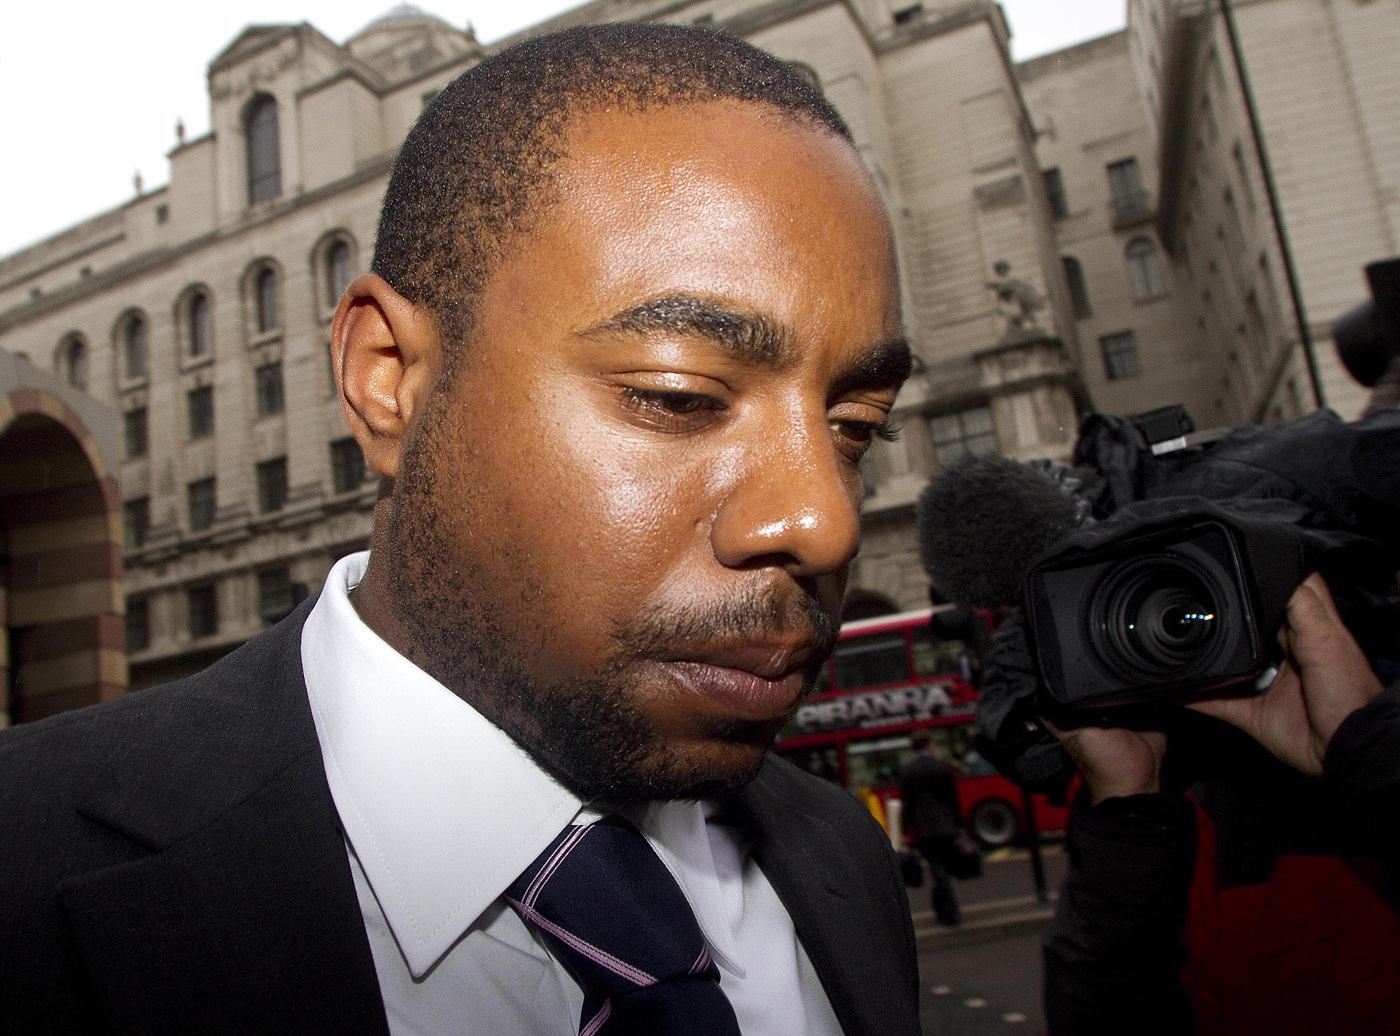 Mervyn Westfield had to live not only with the humiliation of a ban, but also time in jail